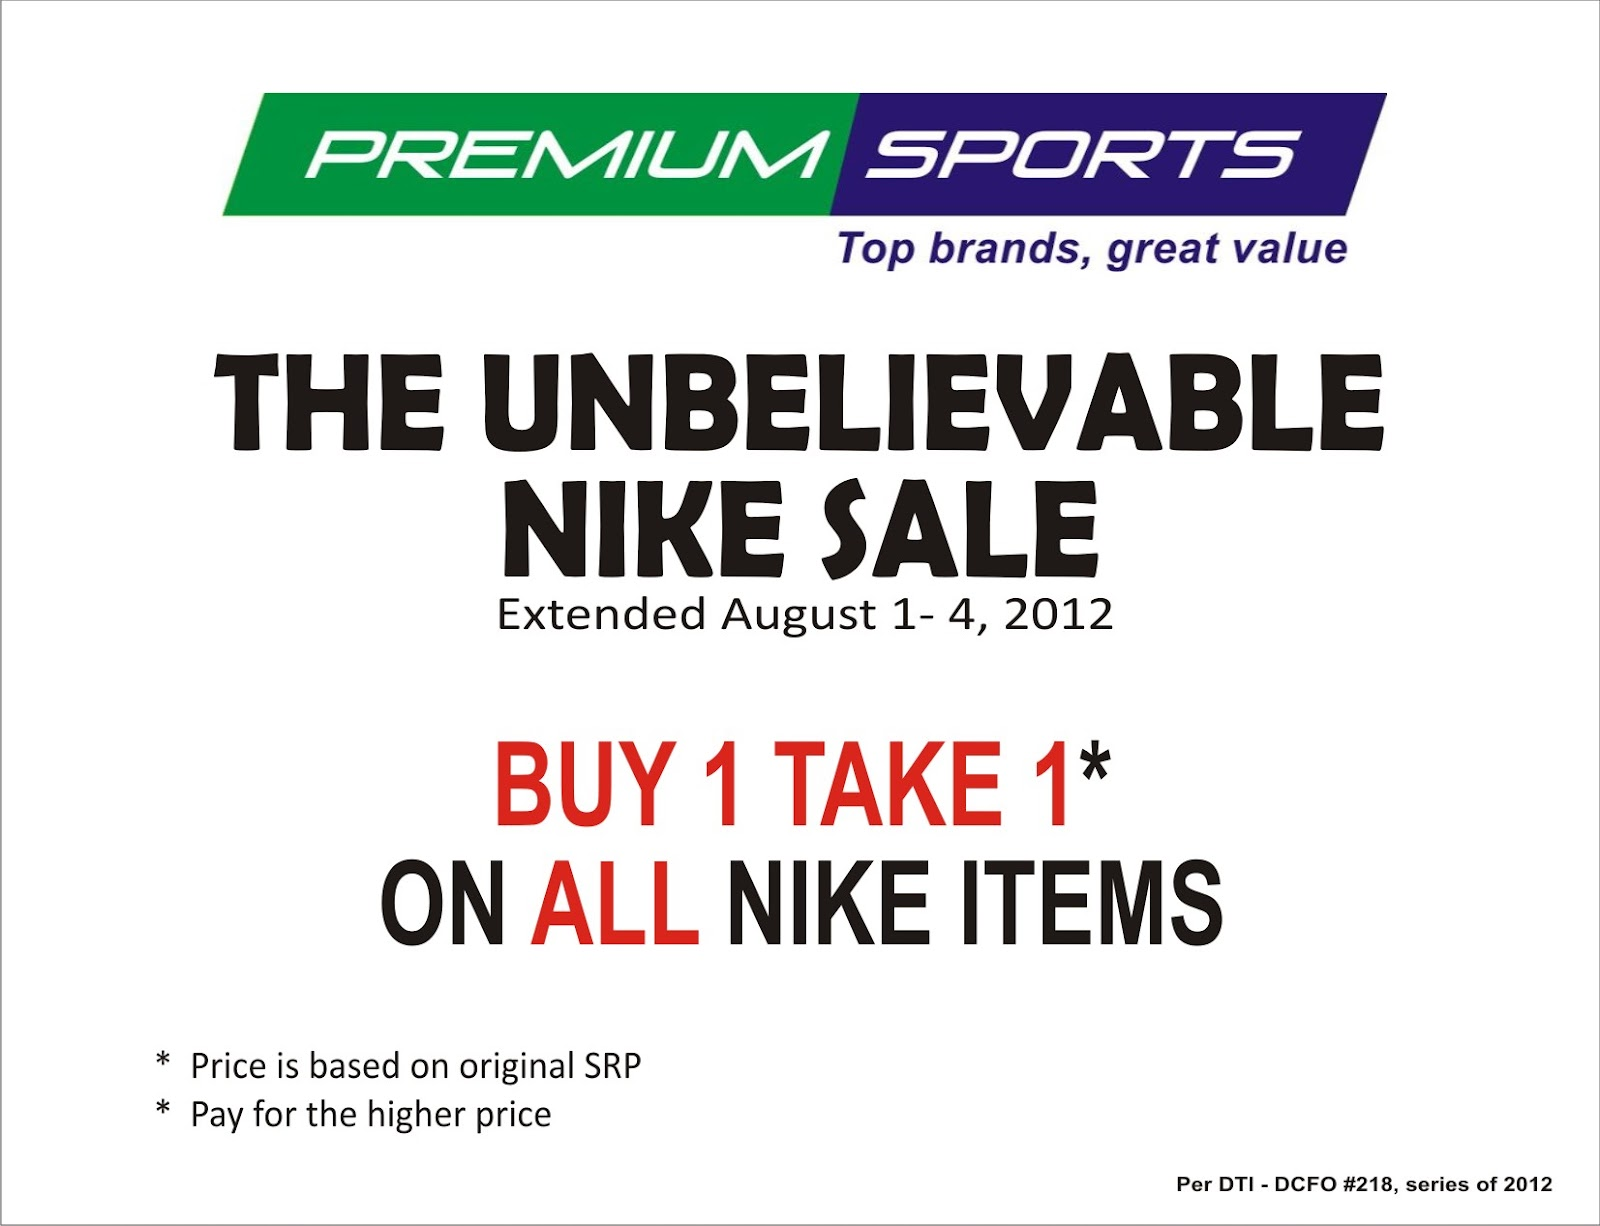 Diggdavao Premium Sports Outlet Extended The Unbelievable